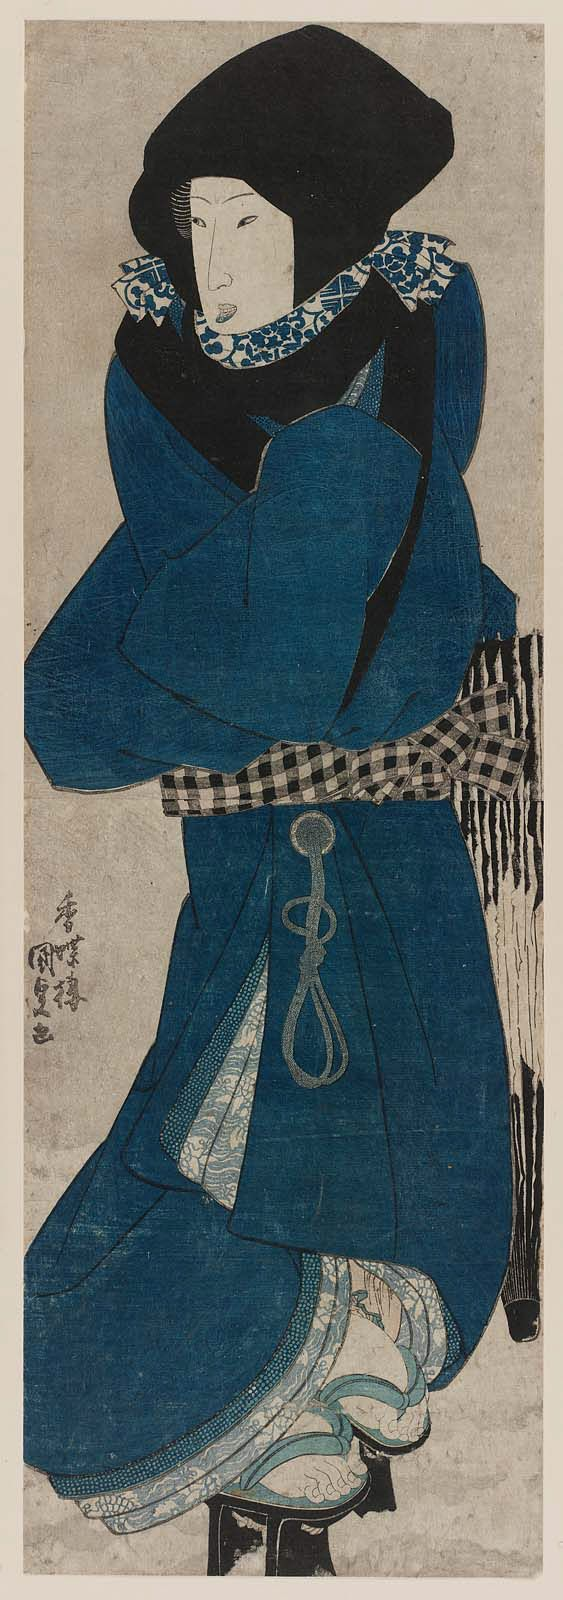 Woman with Black Hood in Snow Artist Utagawa Kunisada I (Toyokuni III), Japanese, 1786–1864